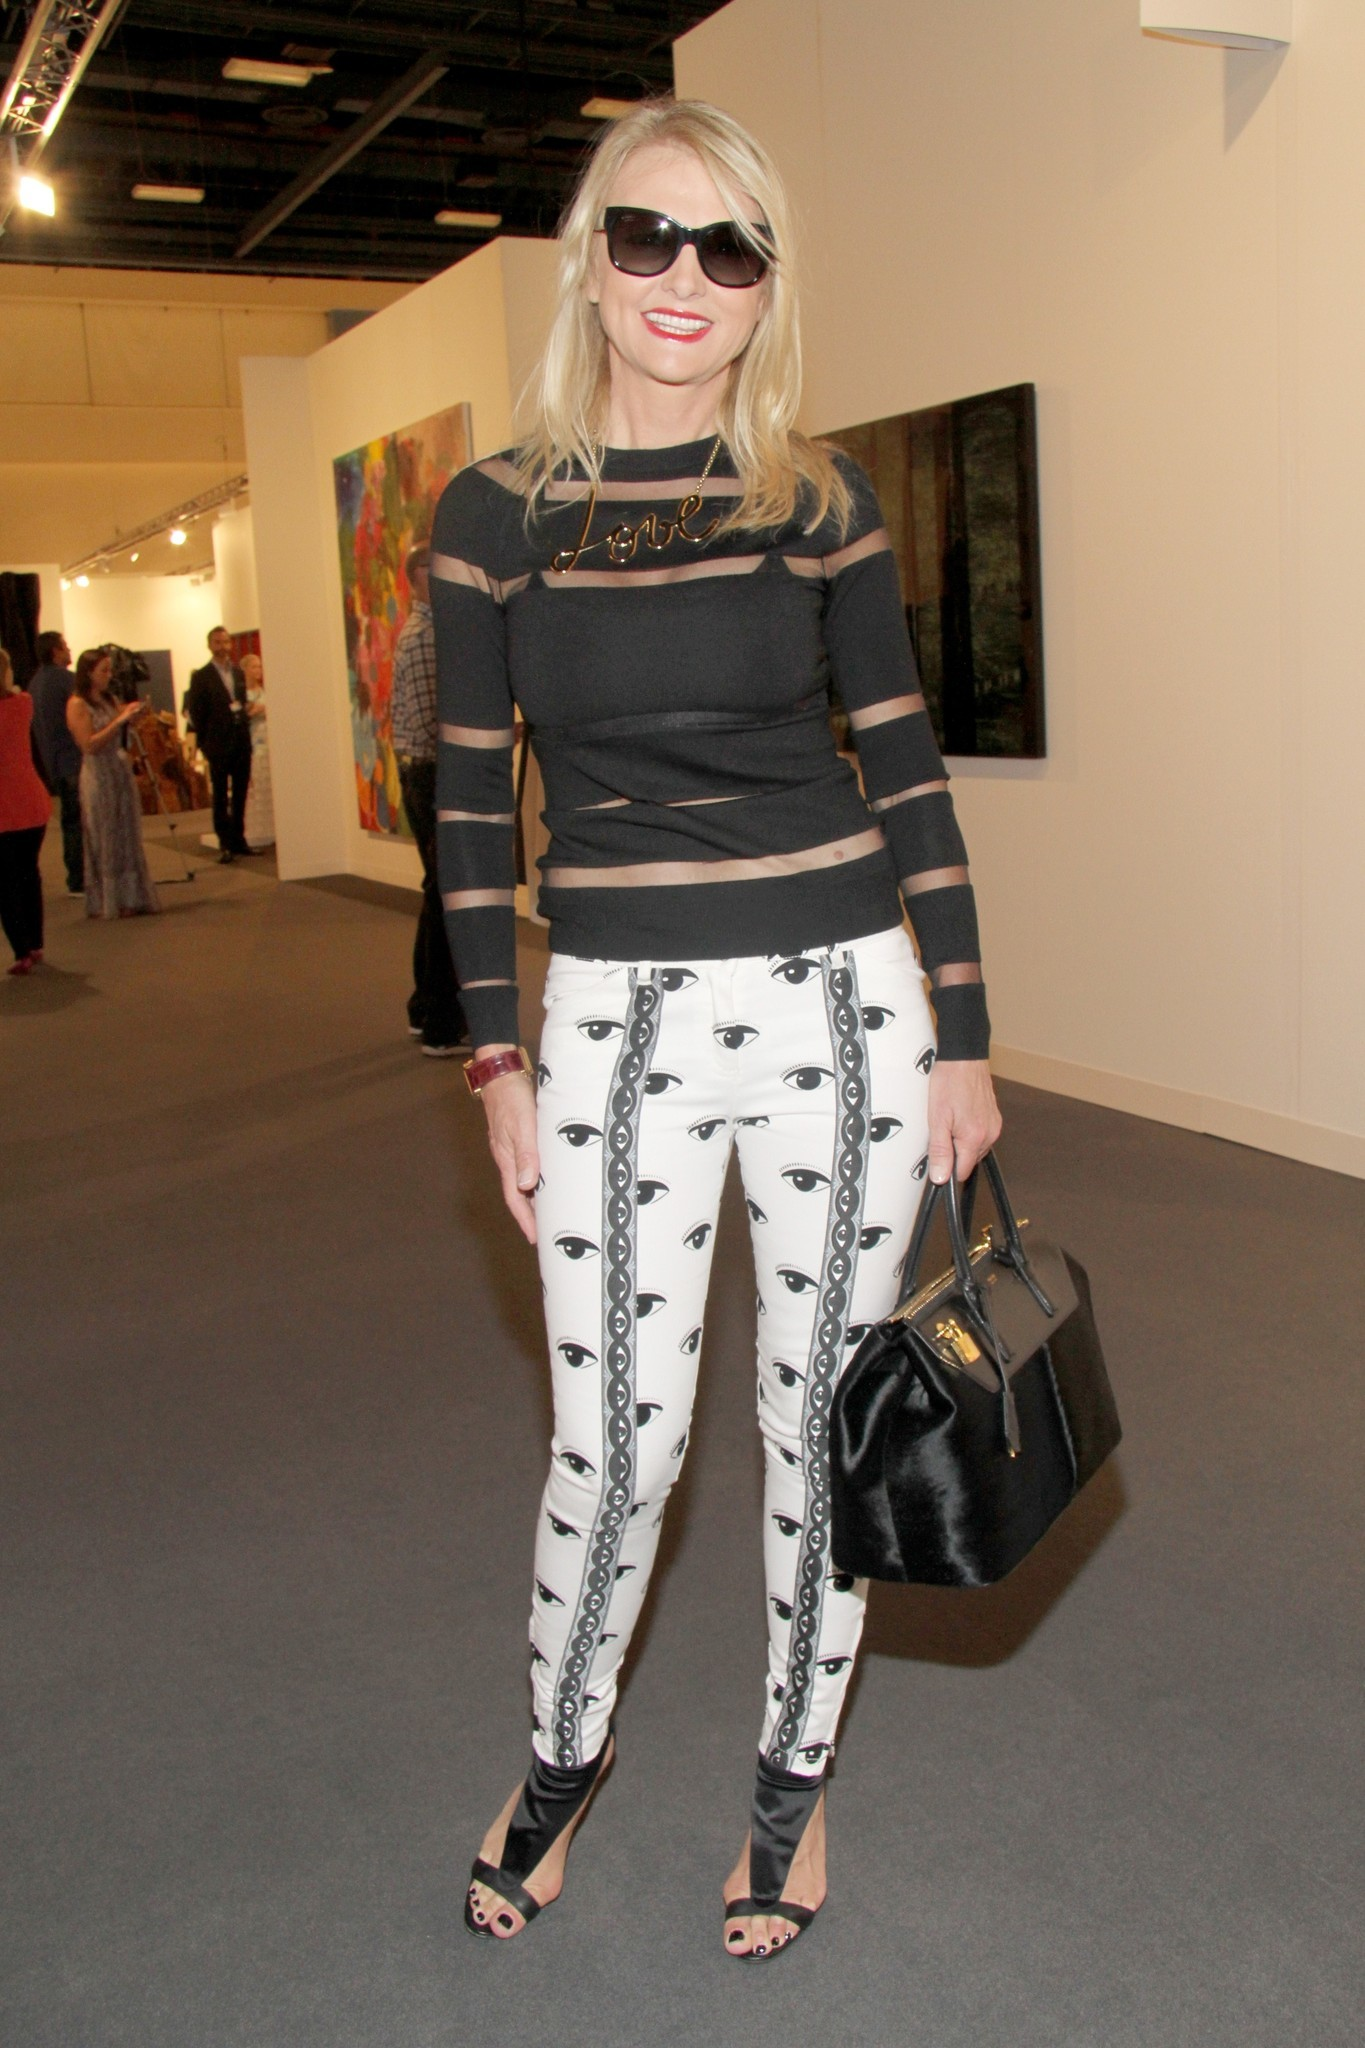 PHOTOS: Artists, celebs at Art Basel - Petra Levin